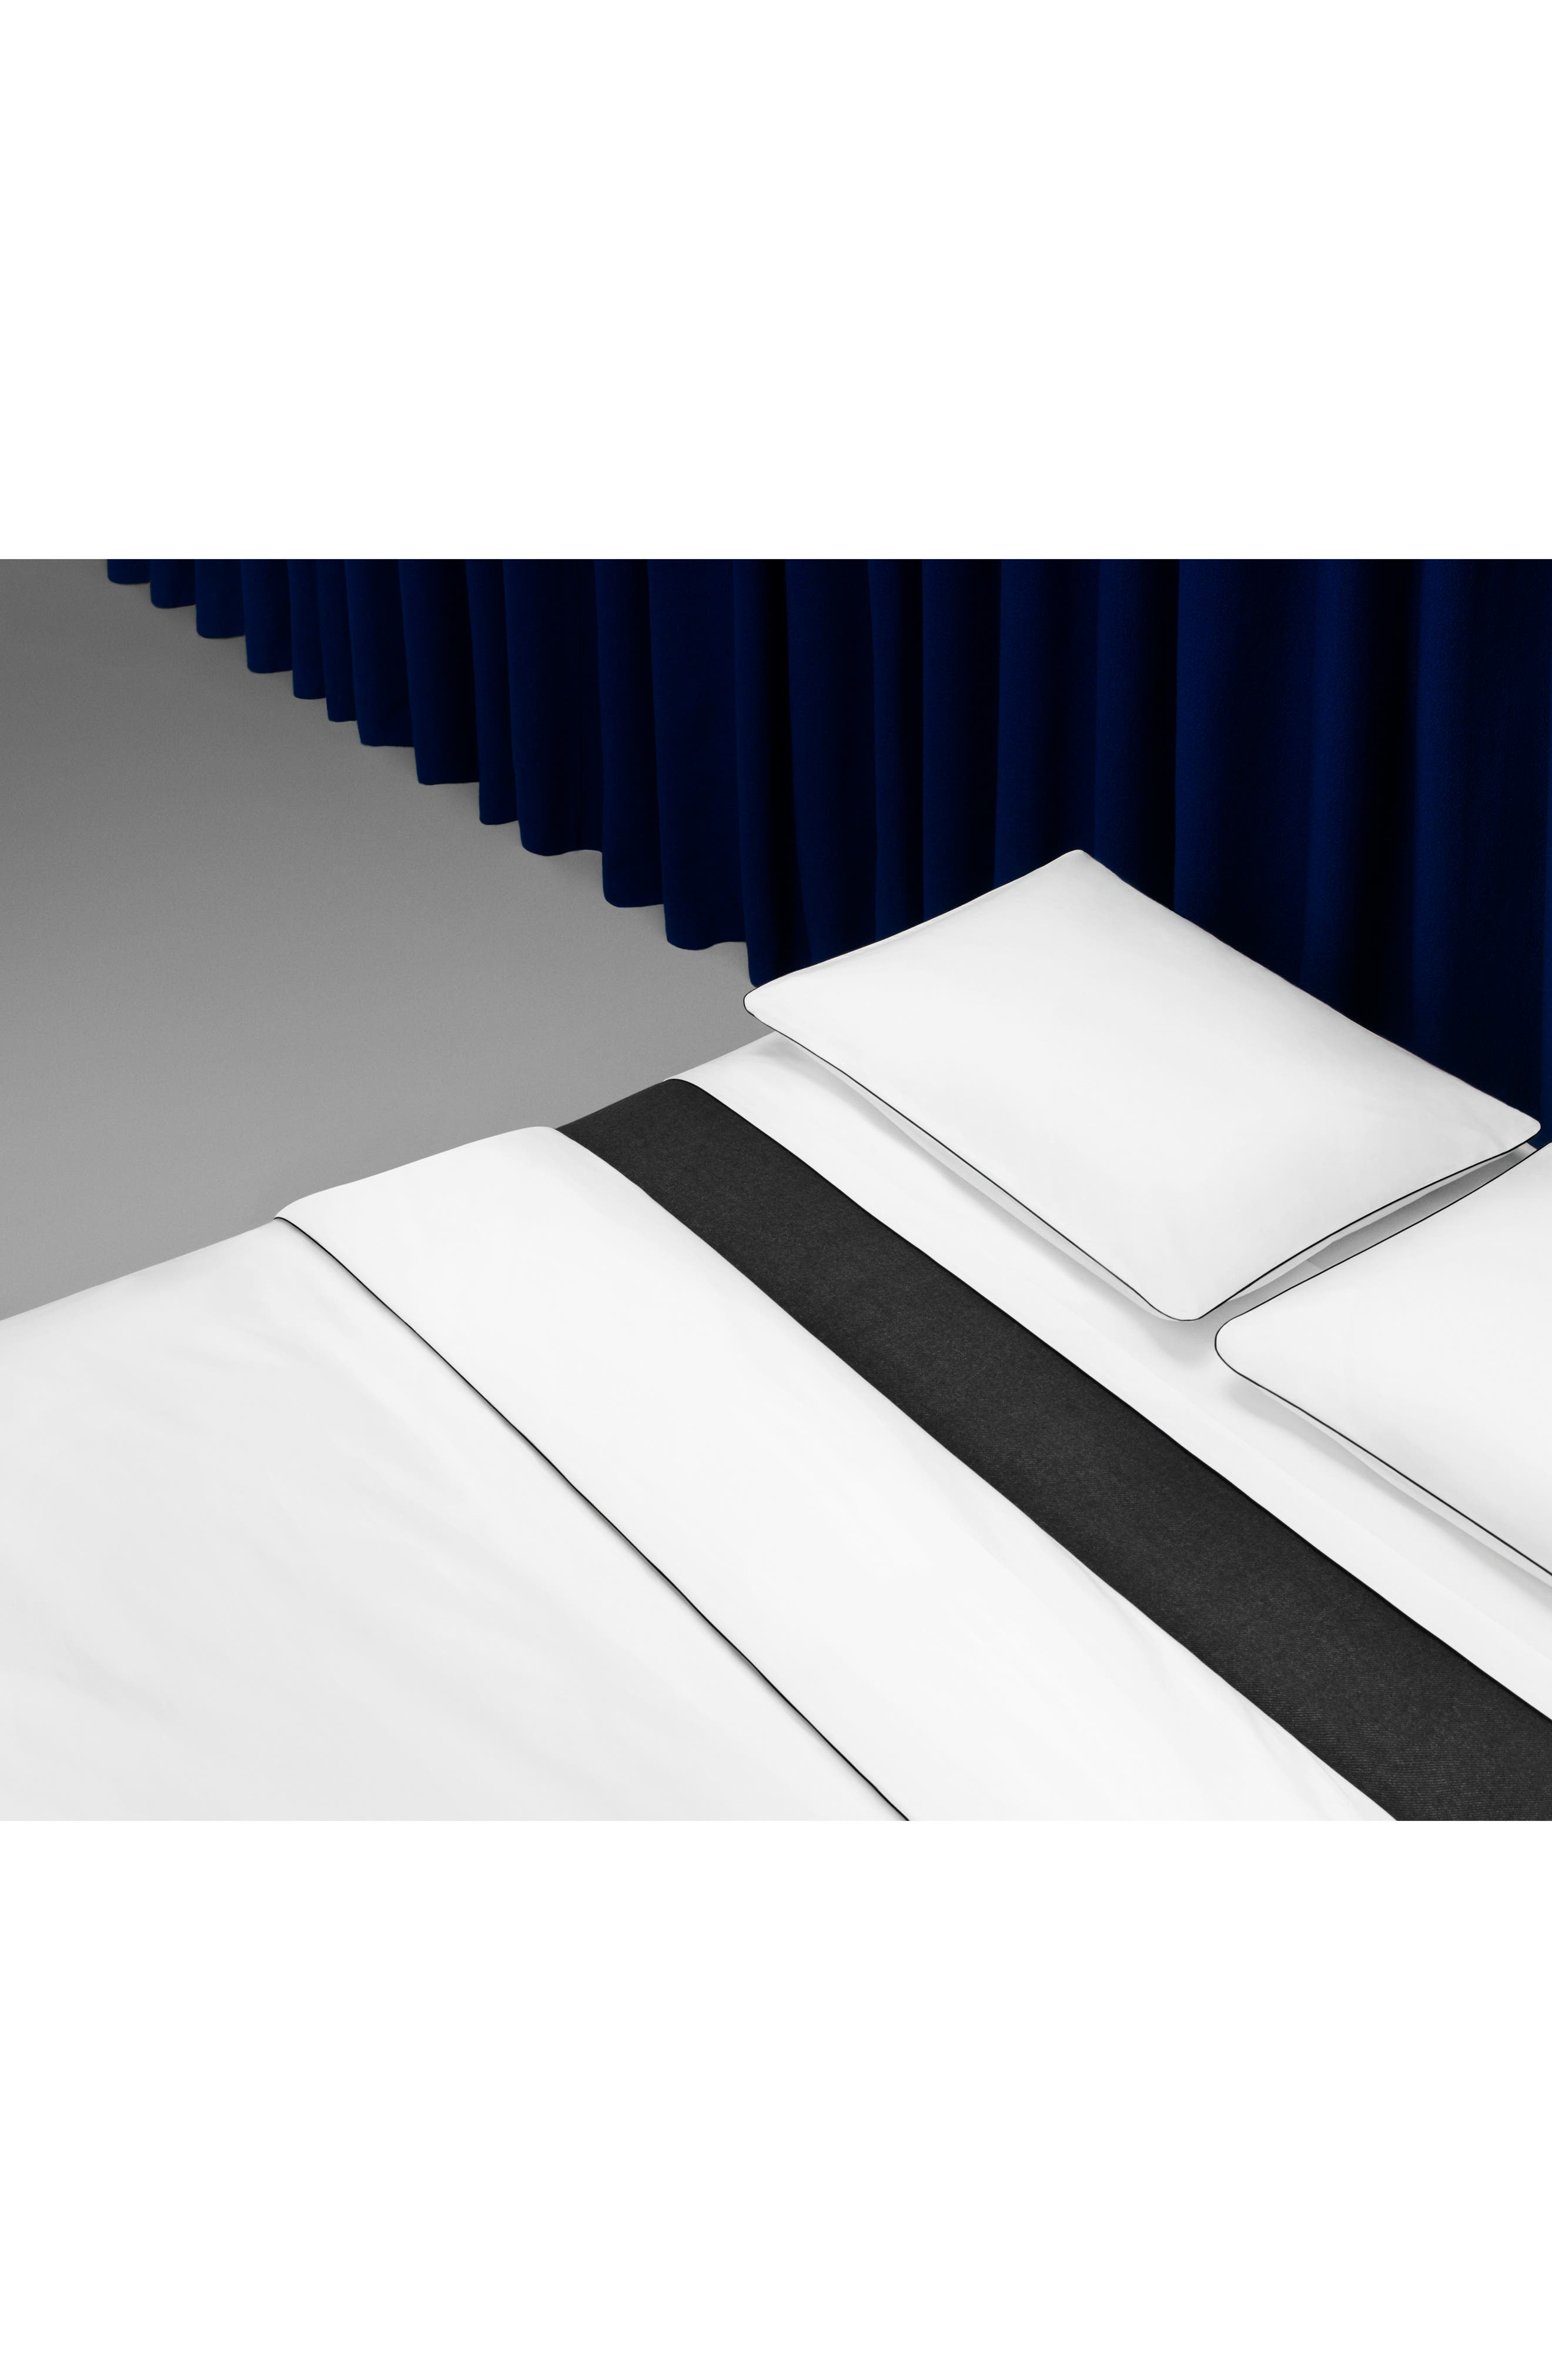 Series 1 500 Thread Count Duvet Cover,                             Alternate thumbnail 3, color,                             001